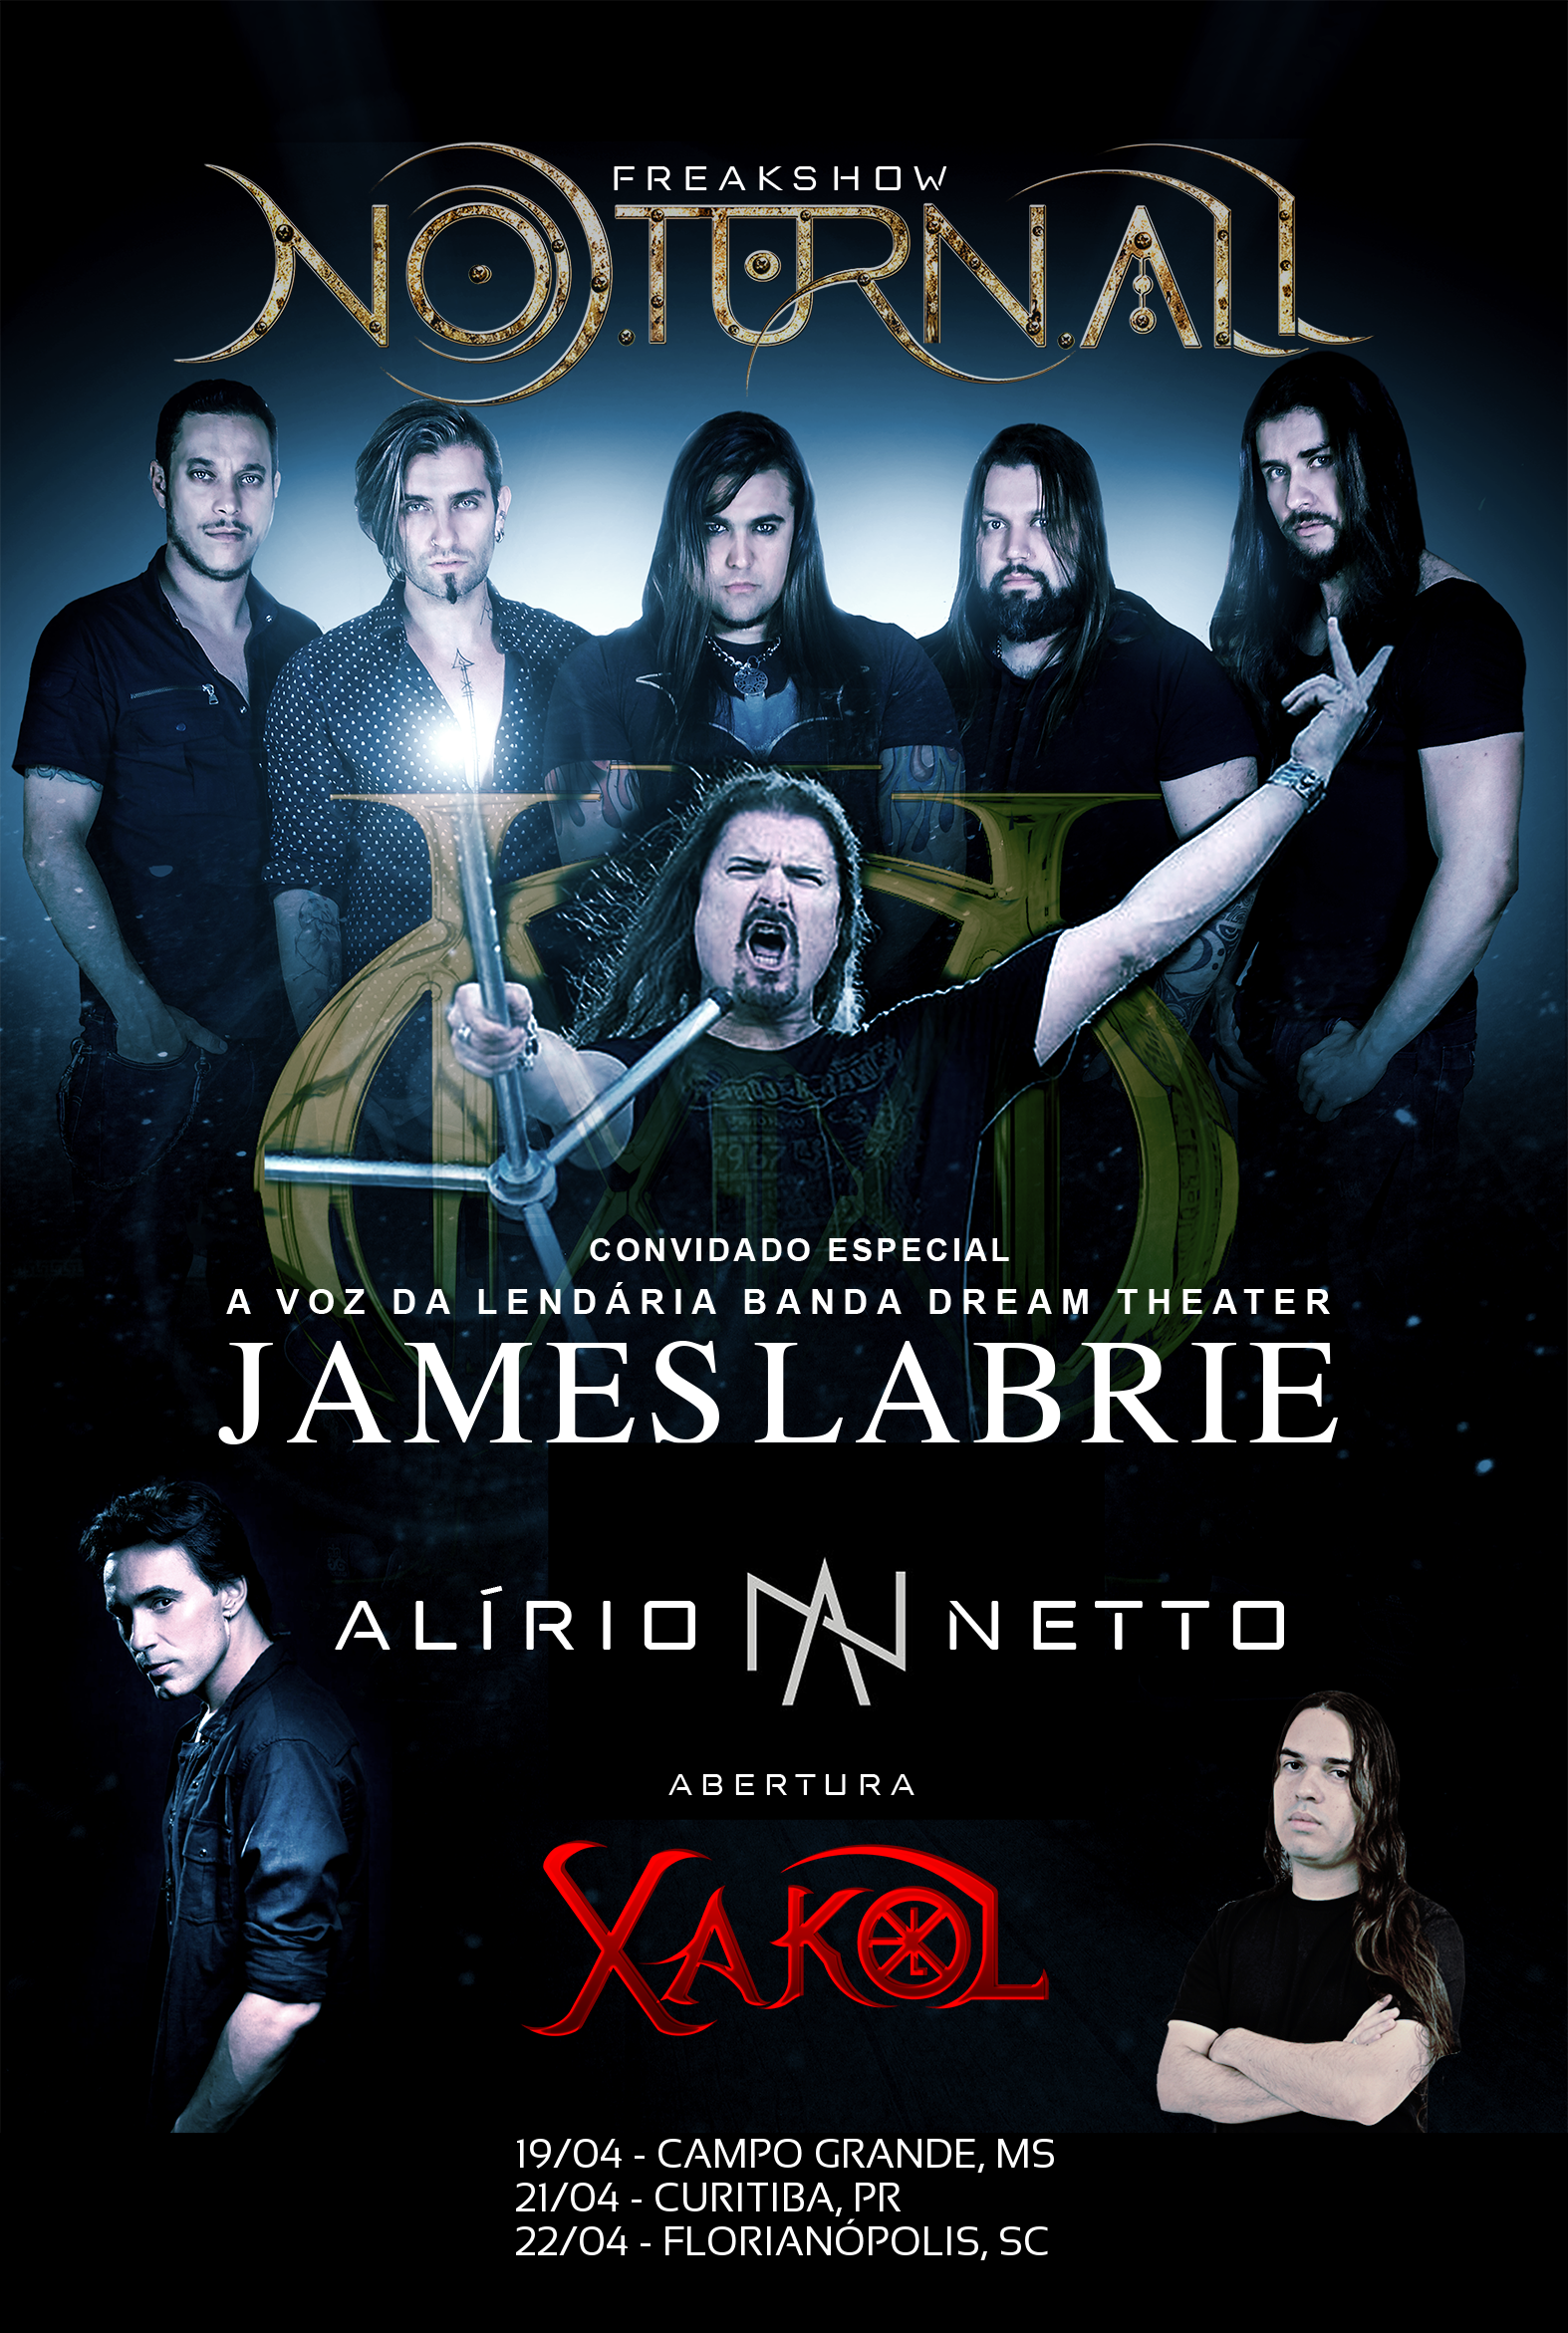 Tour supporting James LaBrie and Noturnall